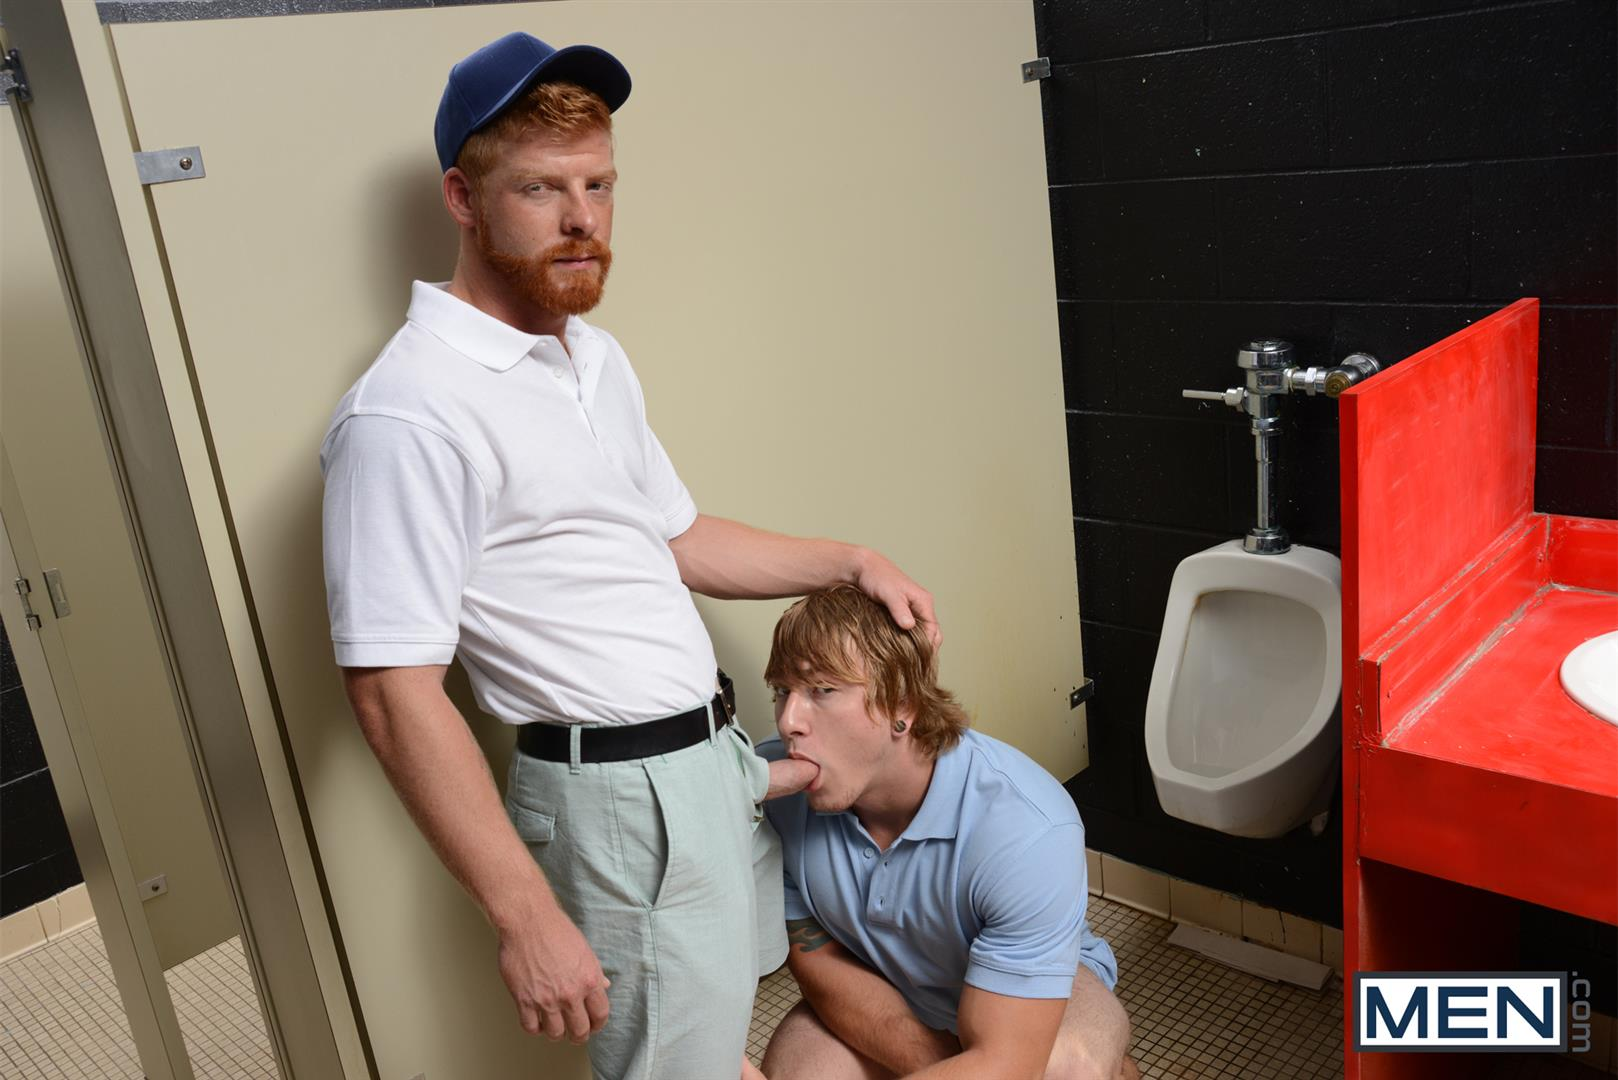 Men Jizz Orgy Swingers Bennett Anthony and Cameron Foster and Colt Rivers and Tom Faulk Fucking Bathroom Amateur Gay Porn 10 Hung Golfing Buddies Fucking In The Bathroom and Clubhouse